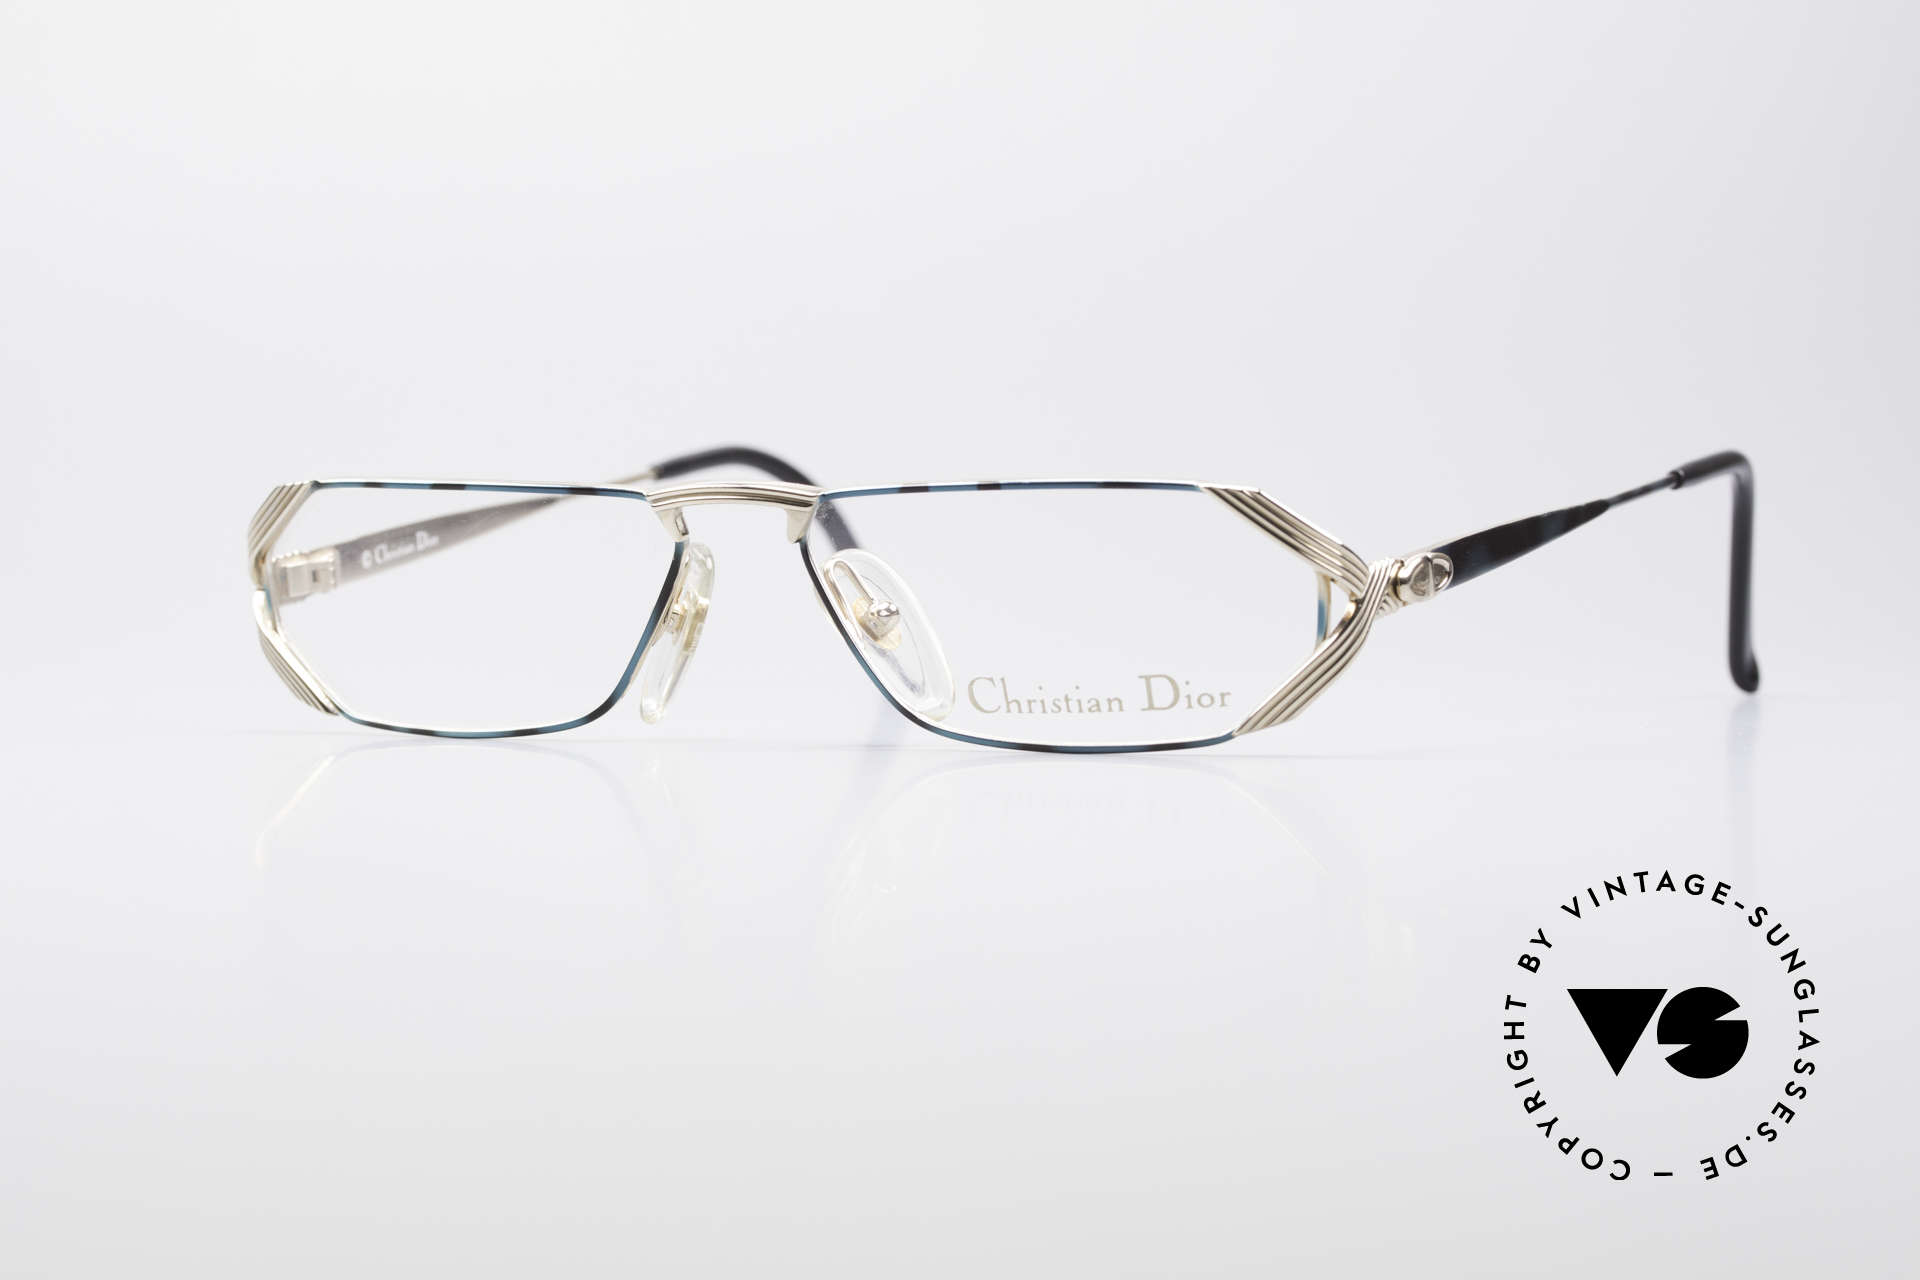 Christian Dior 2617 Vintage Reading Glasses, noble Christian Dior reading glasses from the 90's, Made for Men